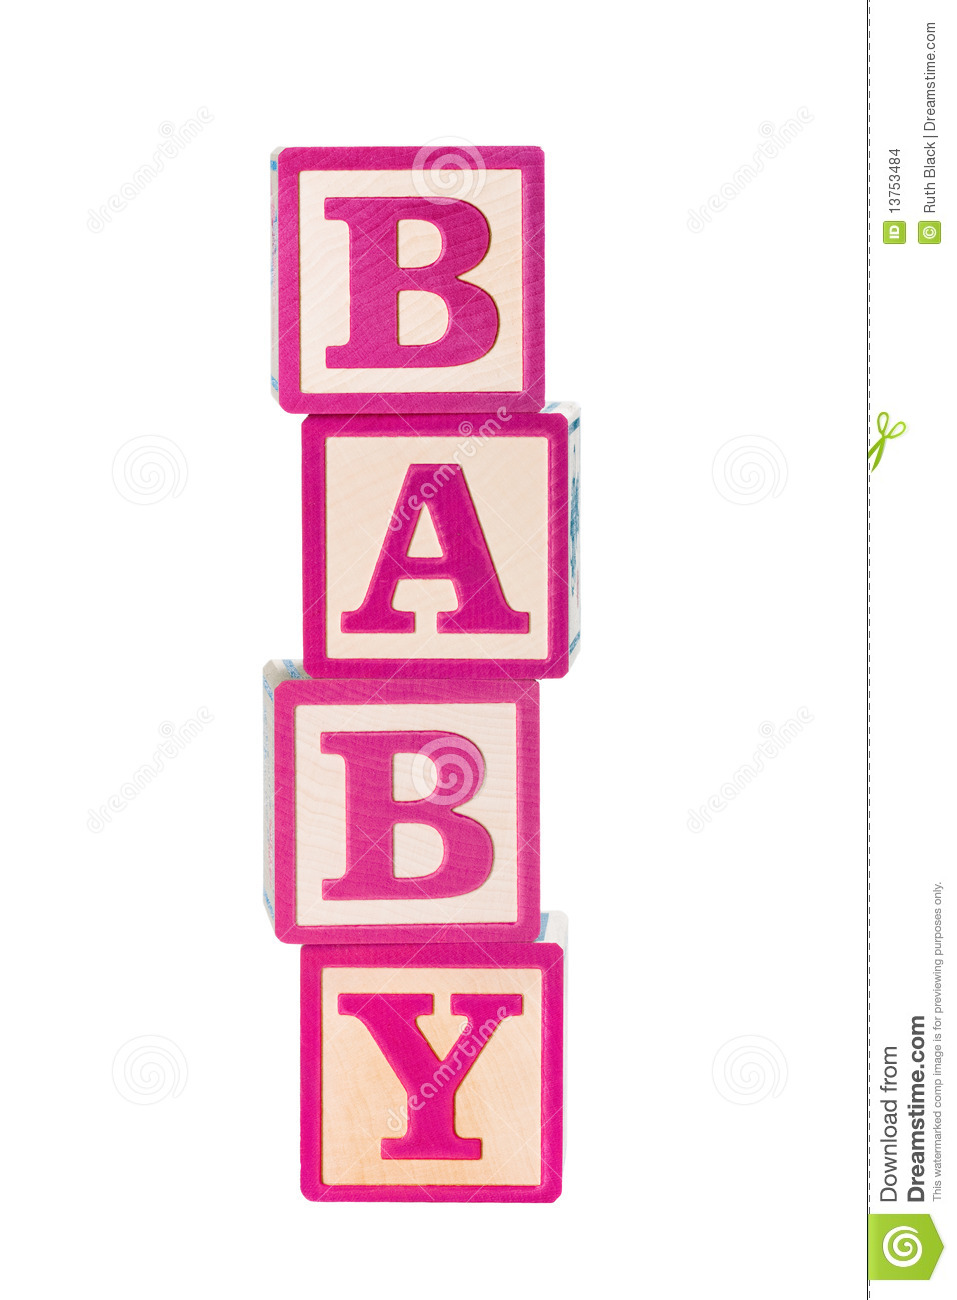 Baby building blocks stock images image 13753484 for Cost of building blocks in jamaica 2017